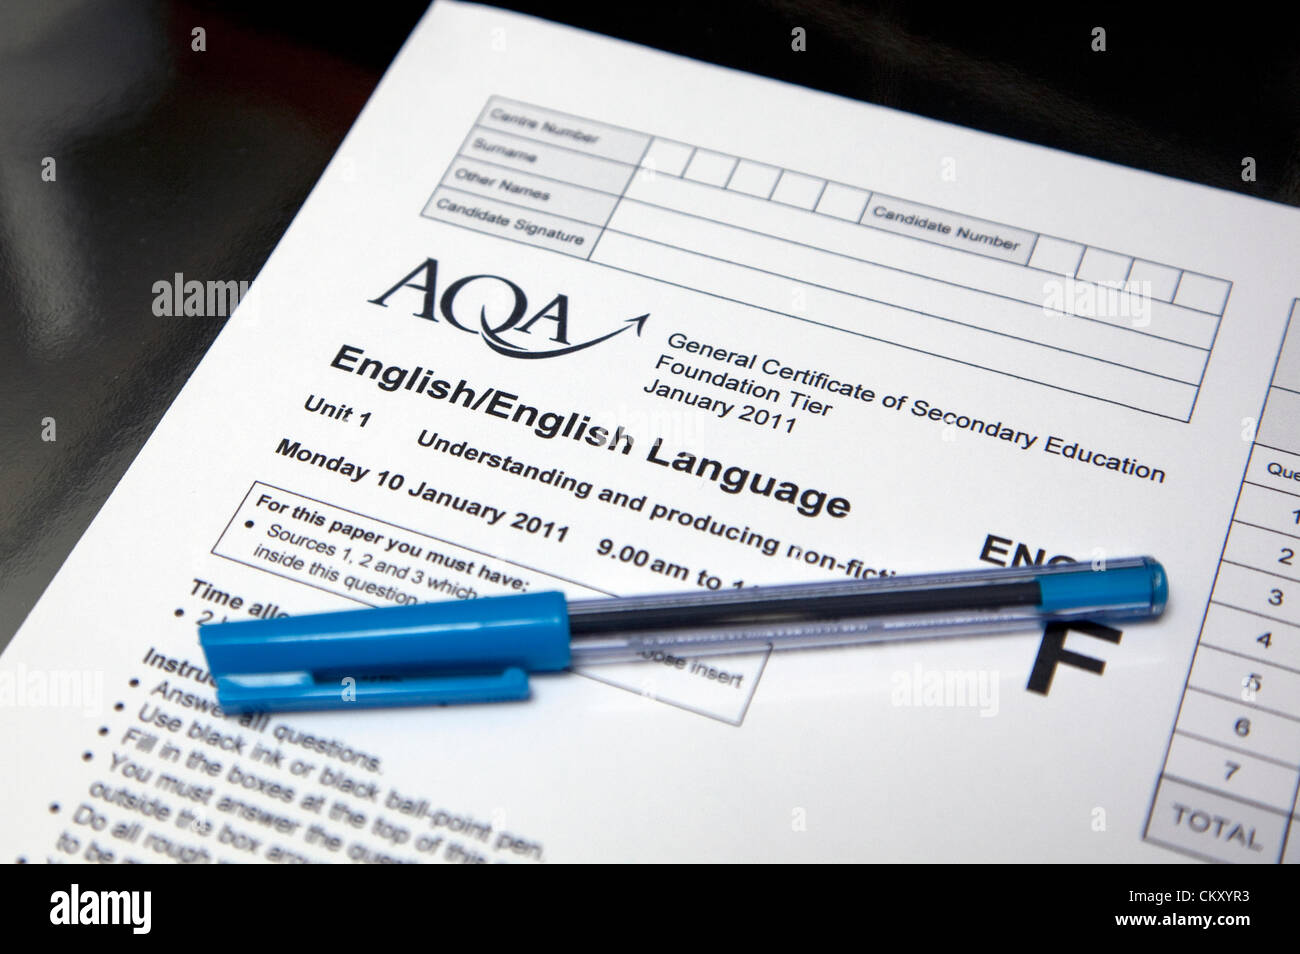 London 31st August 2012: new development in GCSE grading row as Ofqual announces that papers will not be remarked. - Stock Image